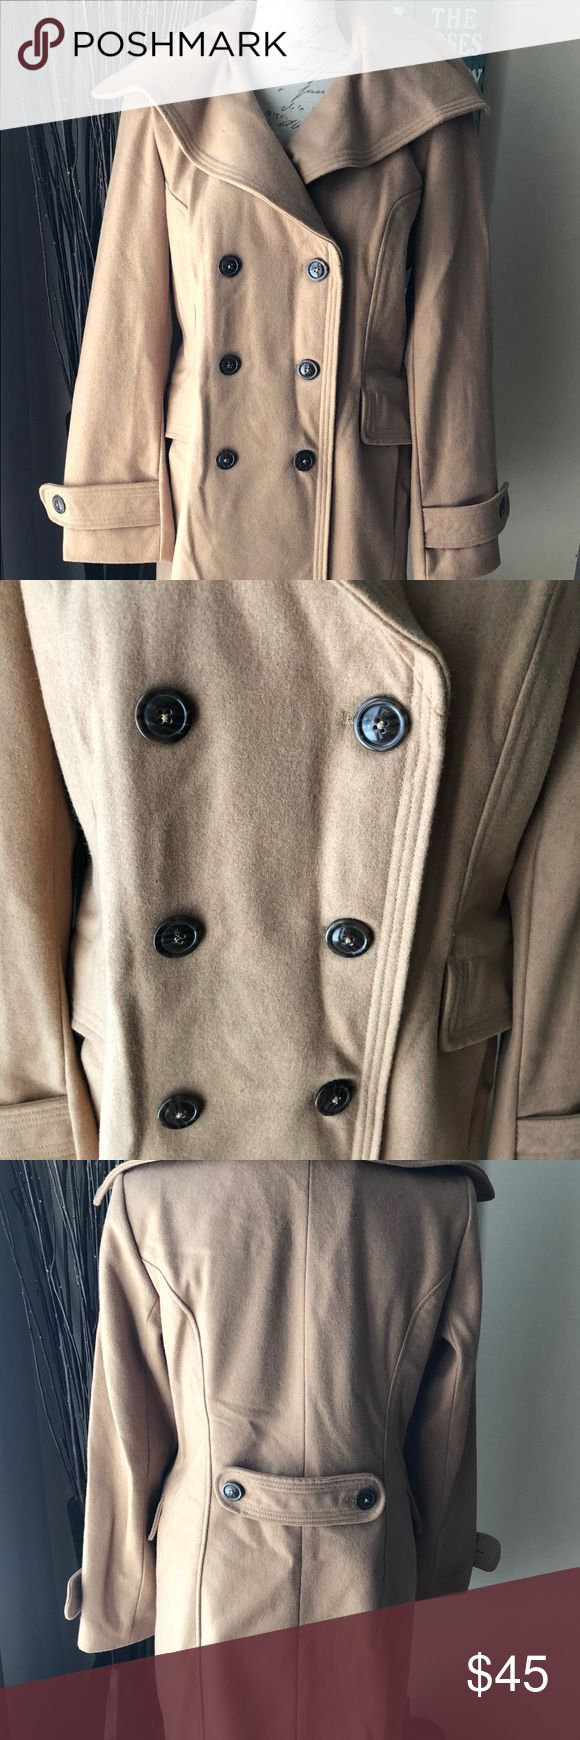 NWOT Stylish Anne Klein Wool Coat Constantly Classy and Chic, this camel colored wool winter coat will never go out of style. Featuring a high collar, two rows of buttons in the front, decorative buttons on the cuffs, and a belted buttoned lapel in the back this coat will not disappoint and can be worn to any occasion. Dress her up or down and she will become your go to coat. Priced to sell, will steam iron prior to shipping, all reasonable offers accepted. No low ballers please…